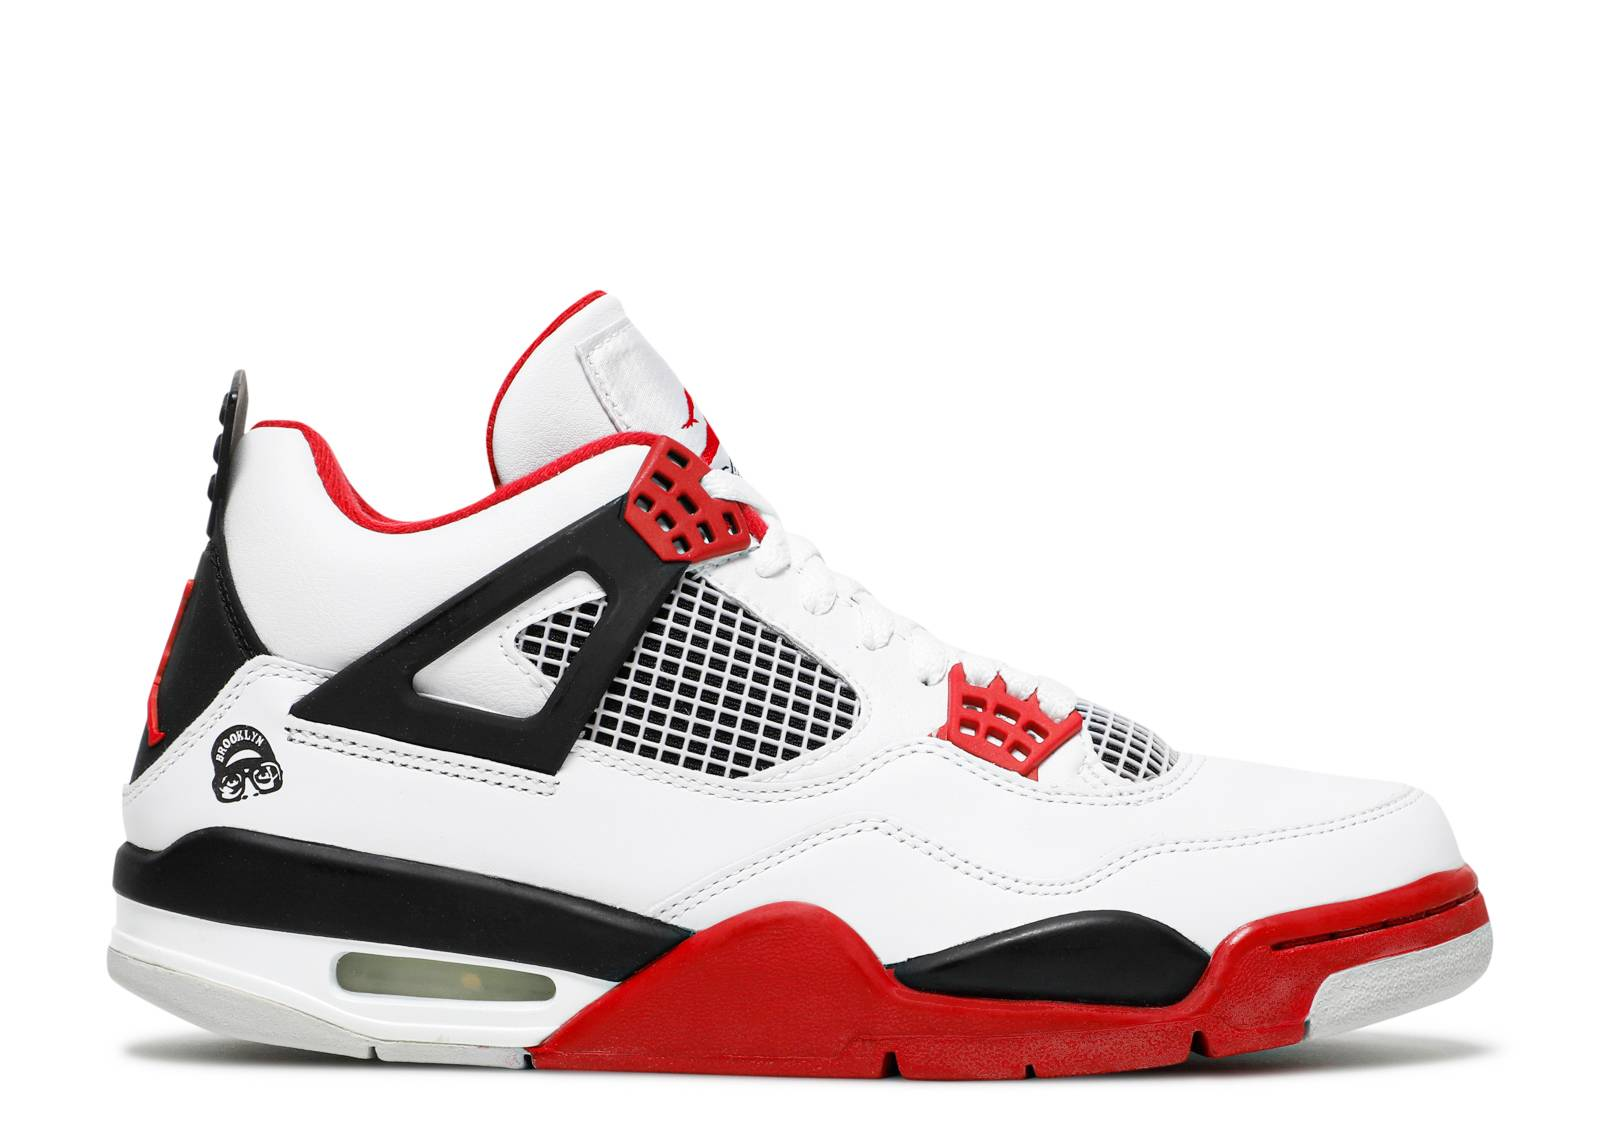 Air Jordan 4 Mars 2006 Blackmon Chrysler